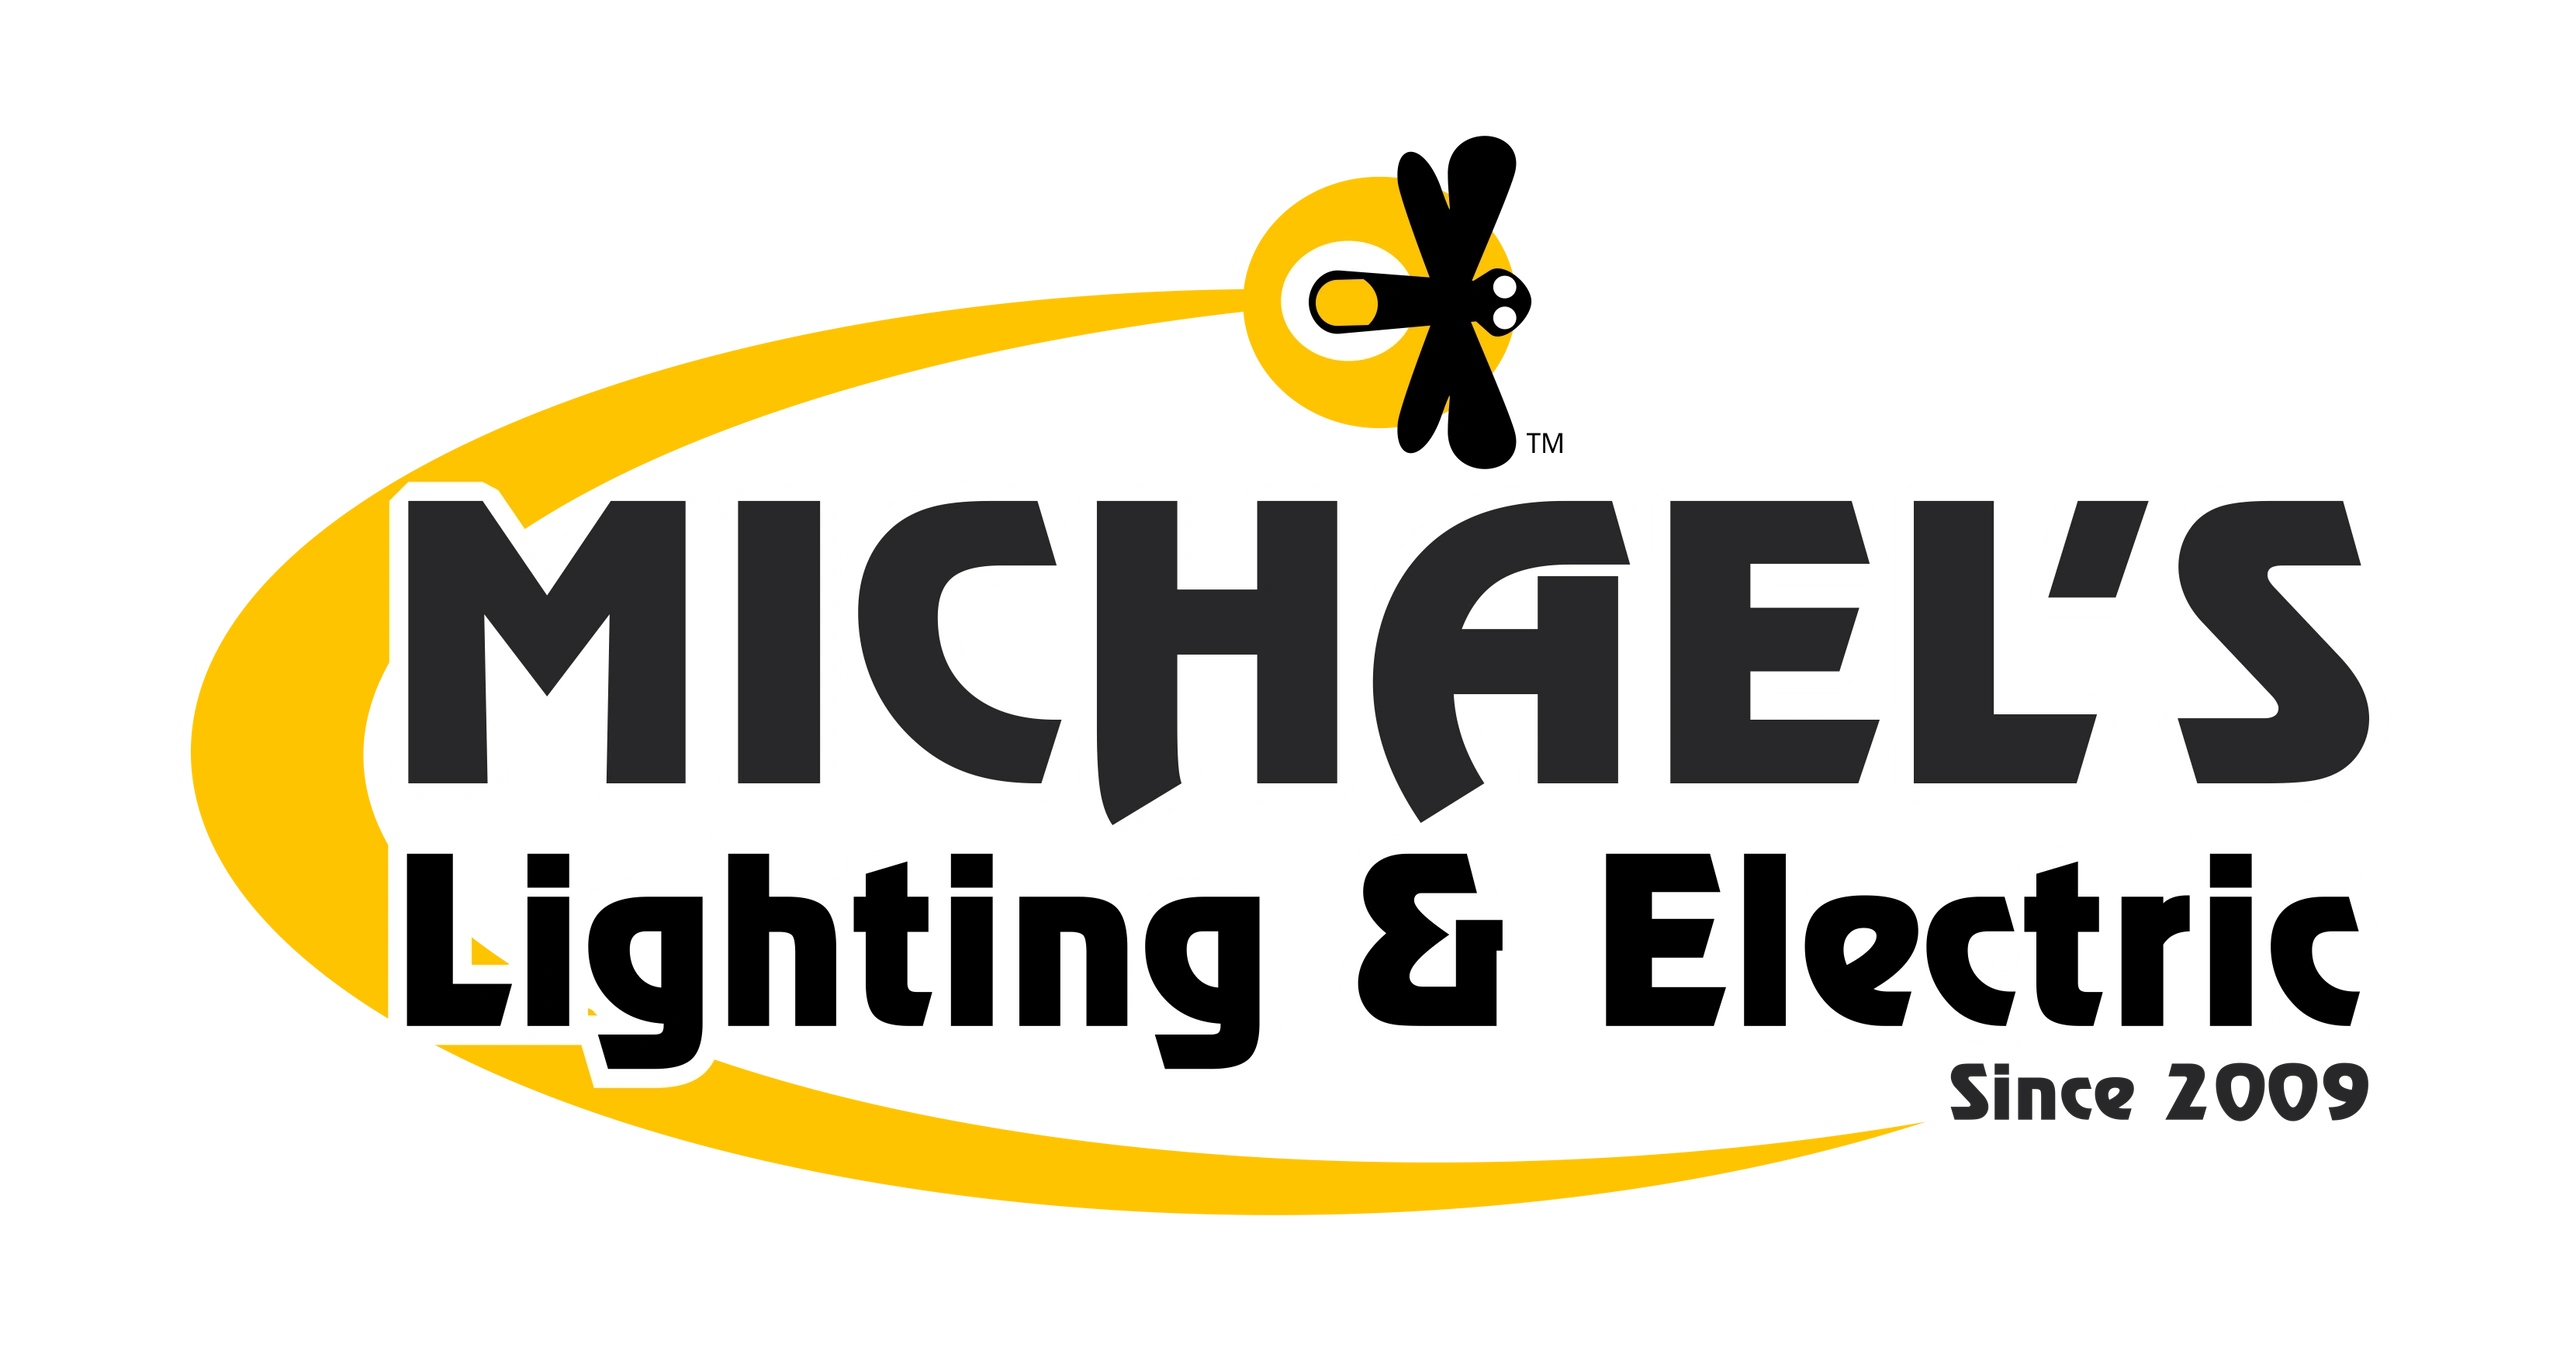 Commercial Electrical Contractor & Lighting Service in